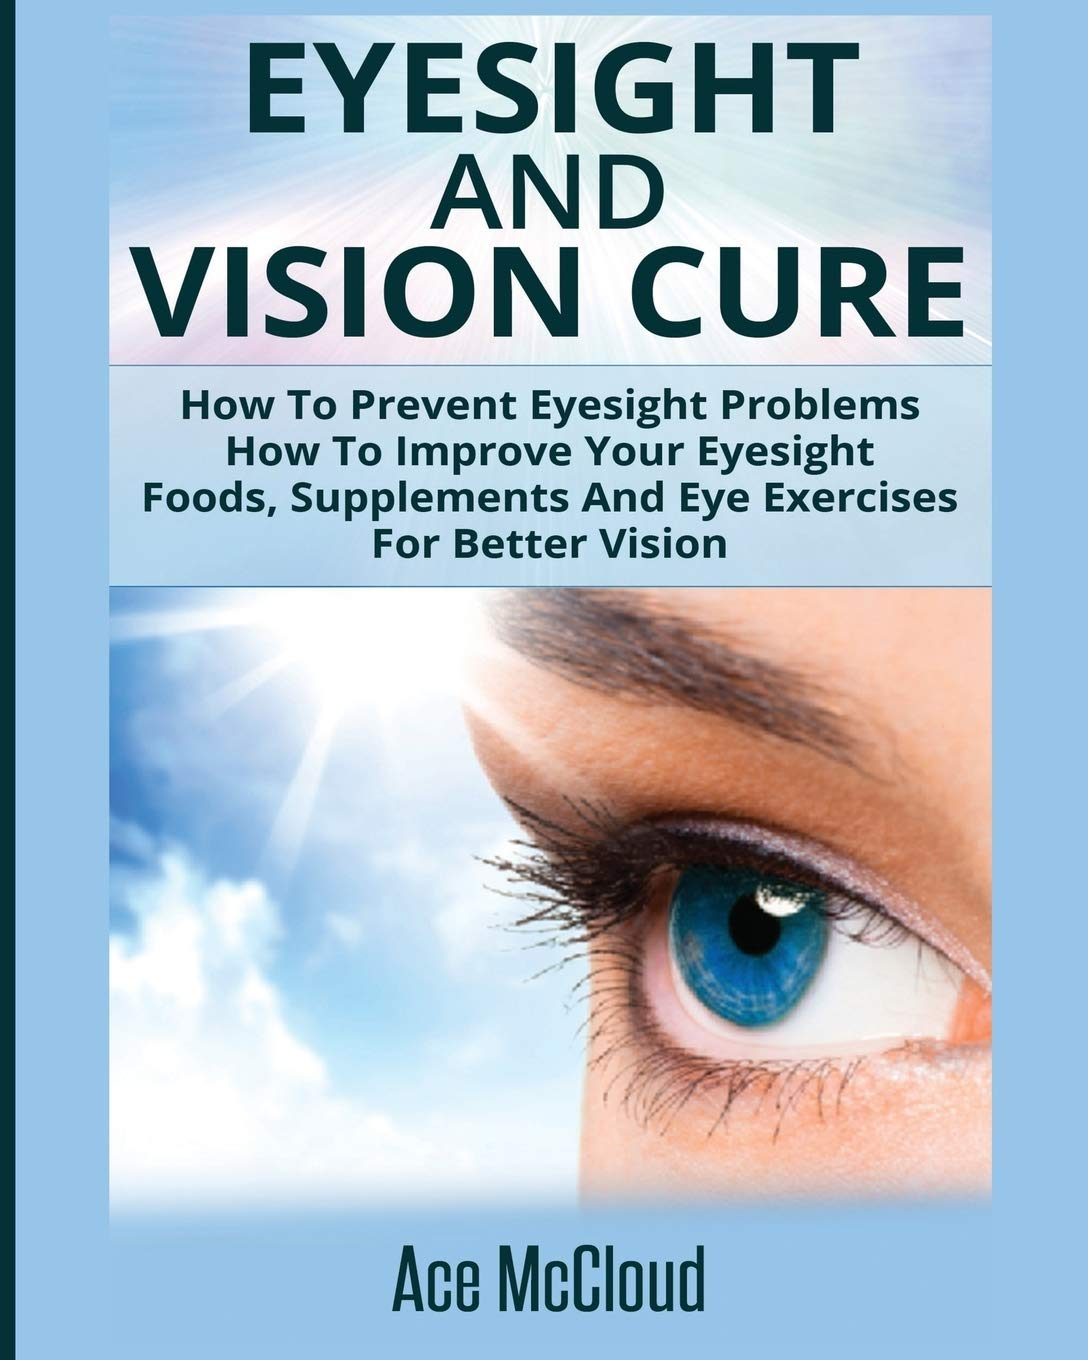 Eyesight And Vision Cure: How To Prevent Eyesight Problems: How To Improve Your Eyesight: Foods, Supplements And Eye Exercises For Better Vision (Heal Your Eyesight Naturally with Nutrition)